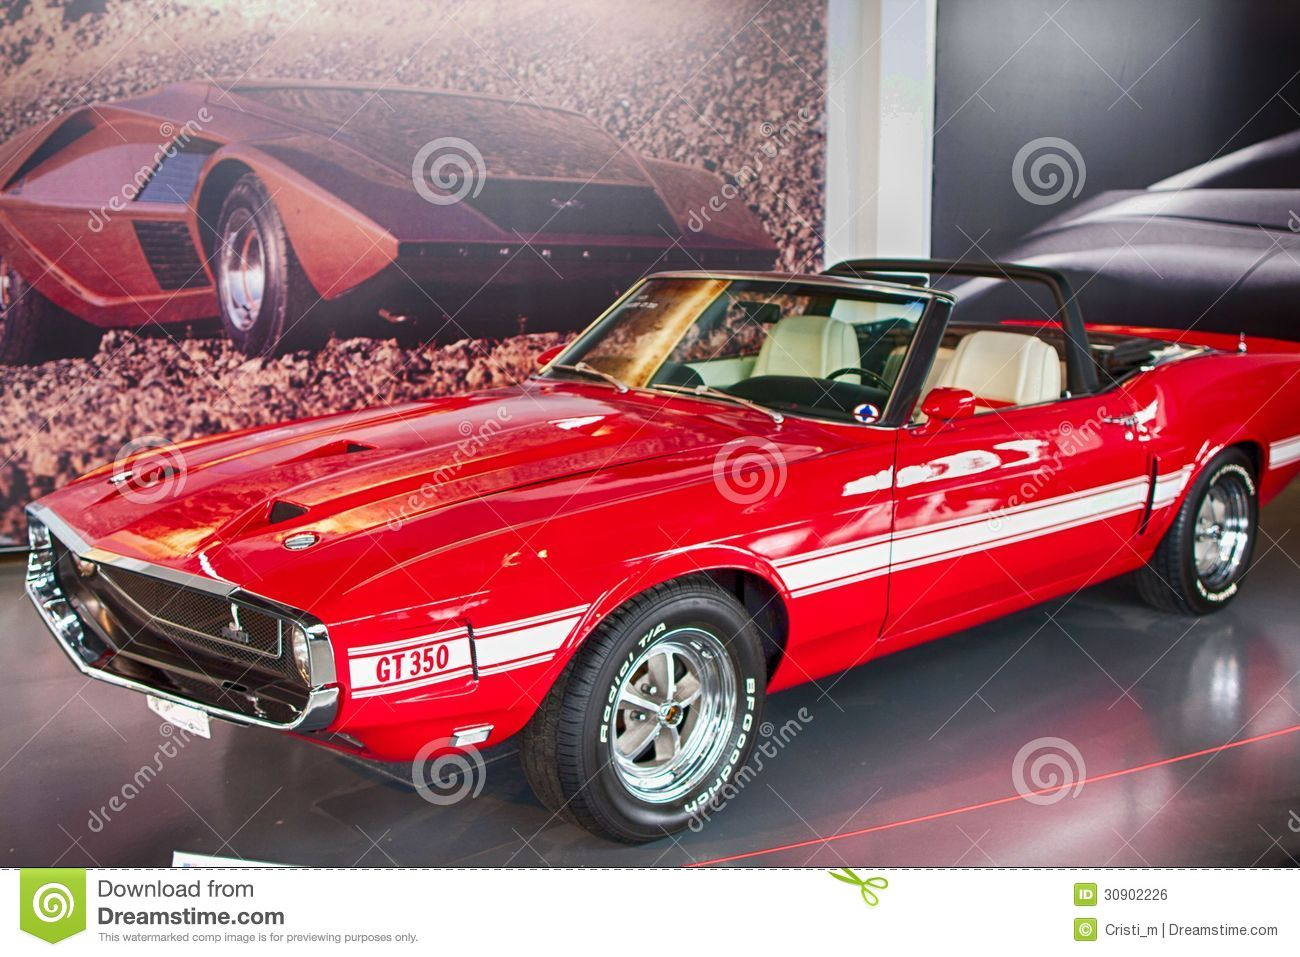 Ford Mustang Shelby Gt350 1969 Editorial Photo Image Of Autoworld Bruxelles Belgium May 8 On Display At Belgian Racing Legends 2013 In